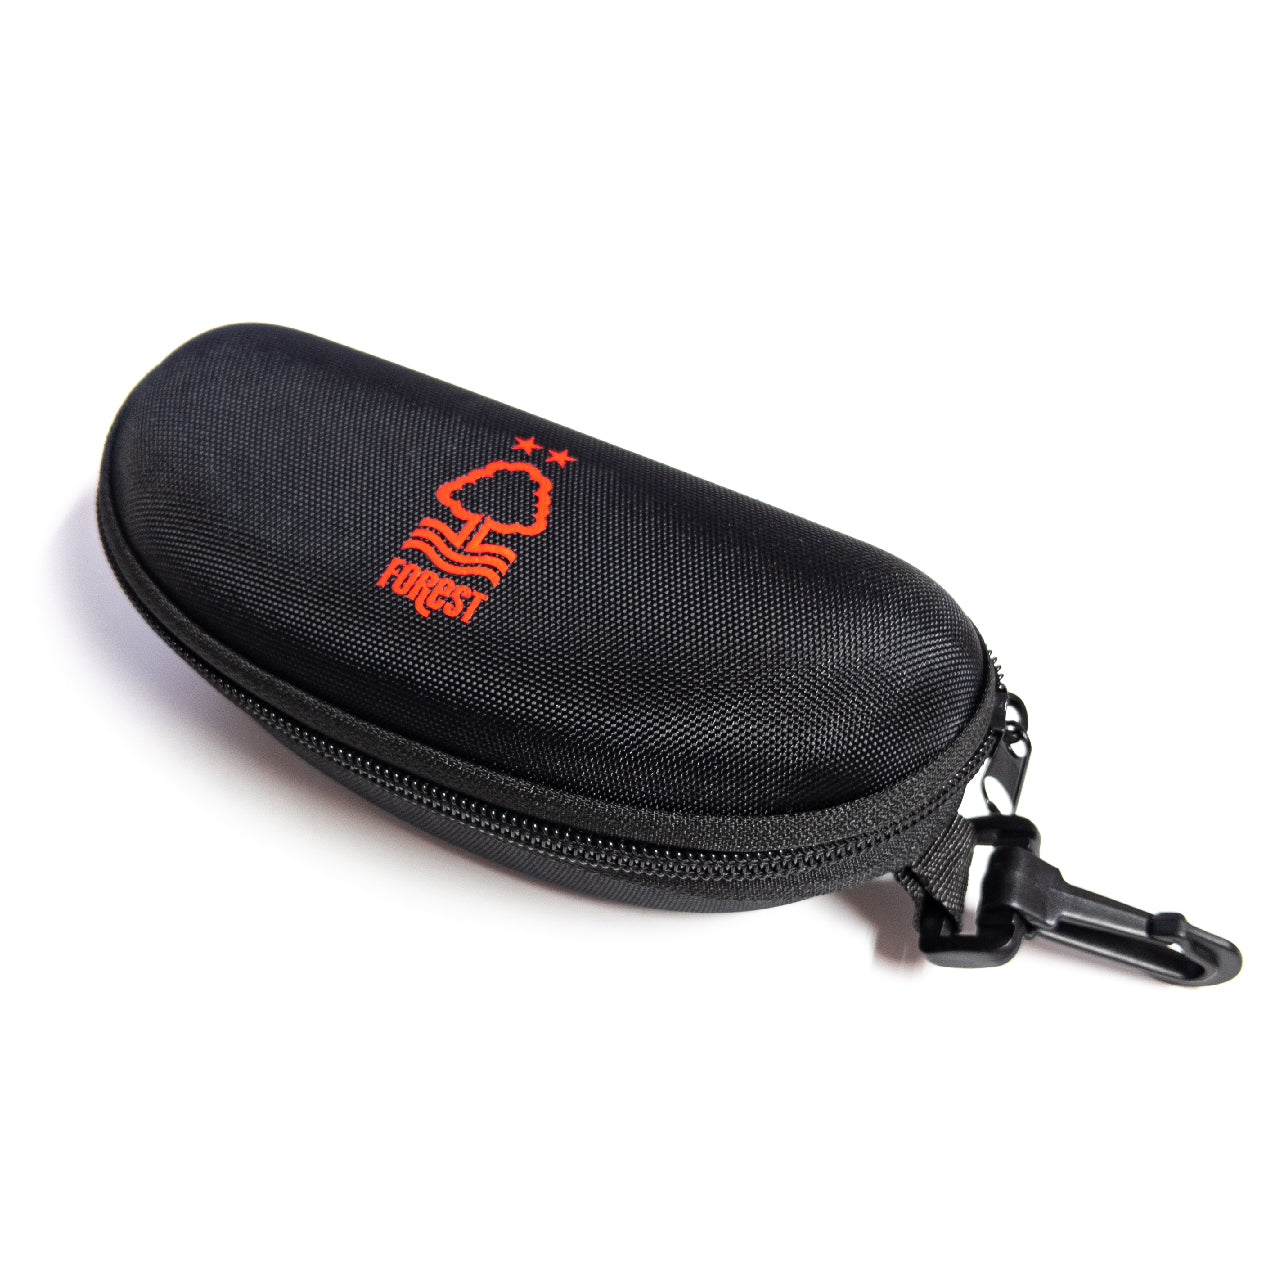 NFFC Sunglasses Case